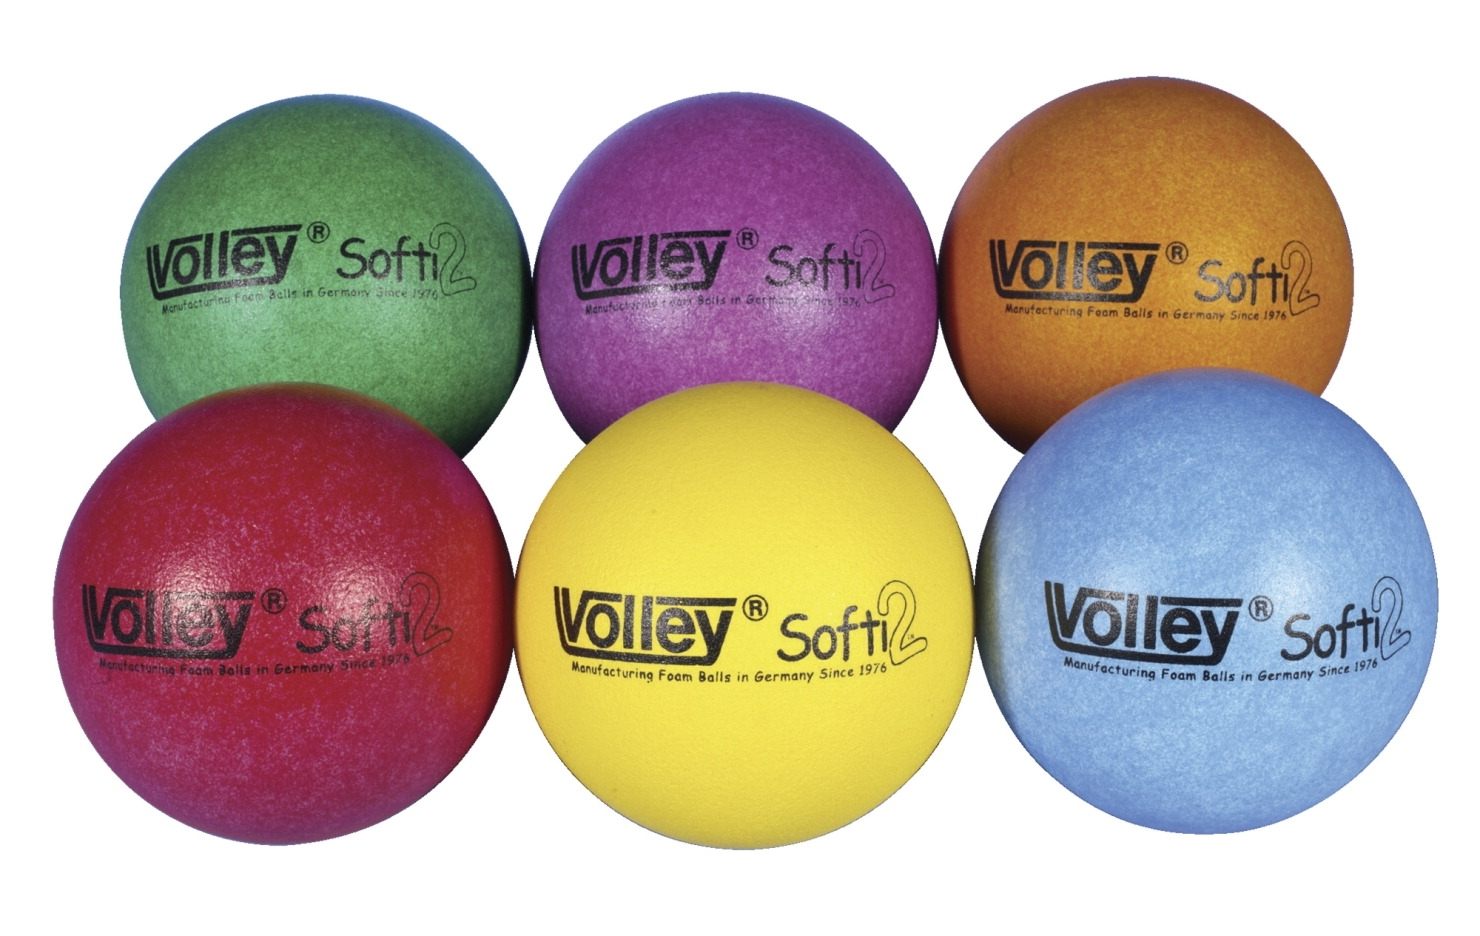 Sports & Fitness Physical Education & Sport Team Building Activities & Equipment Team Building Activities & Games - 030484 - Volley Superskin-2 Softi Very Low Bounce Balls; Set Of 6 030484